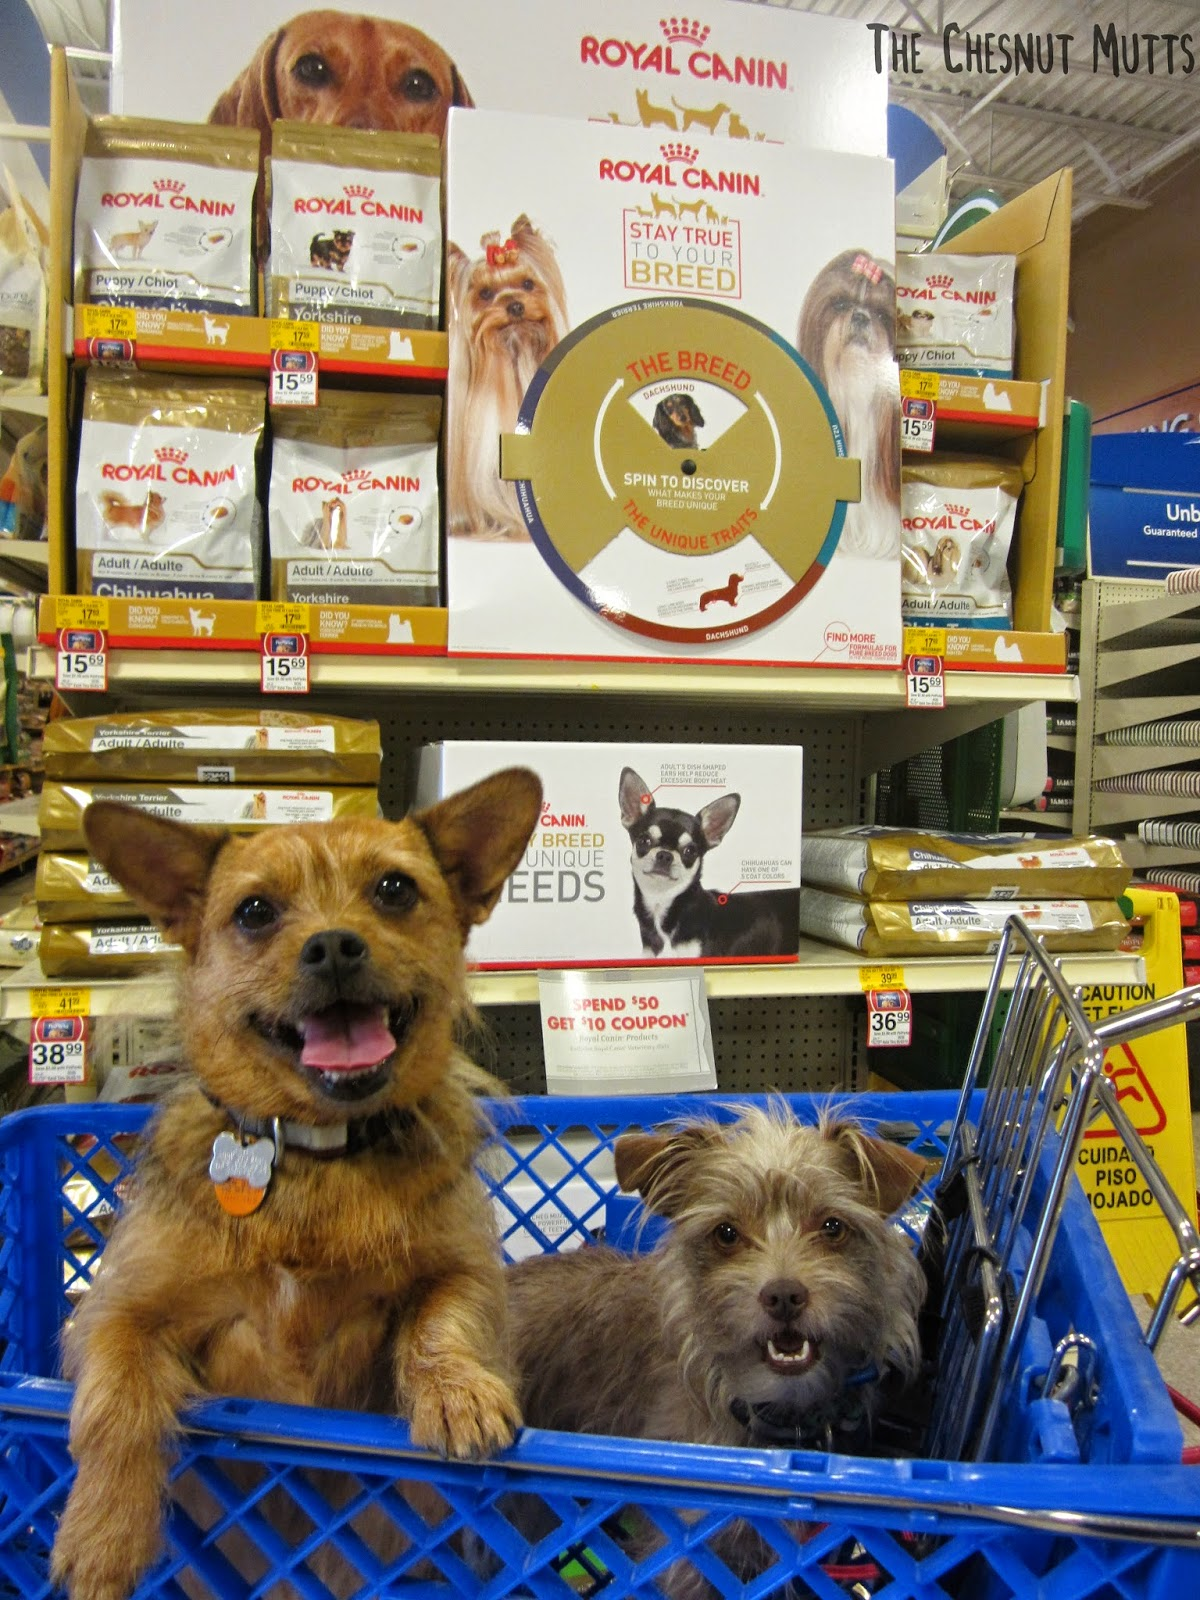 Jada and Bailey in a Petsmart cart in front of Royal Canin Dog Food